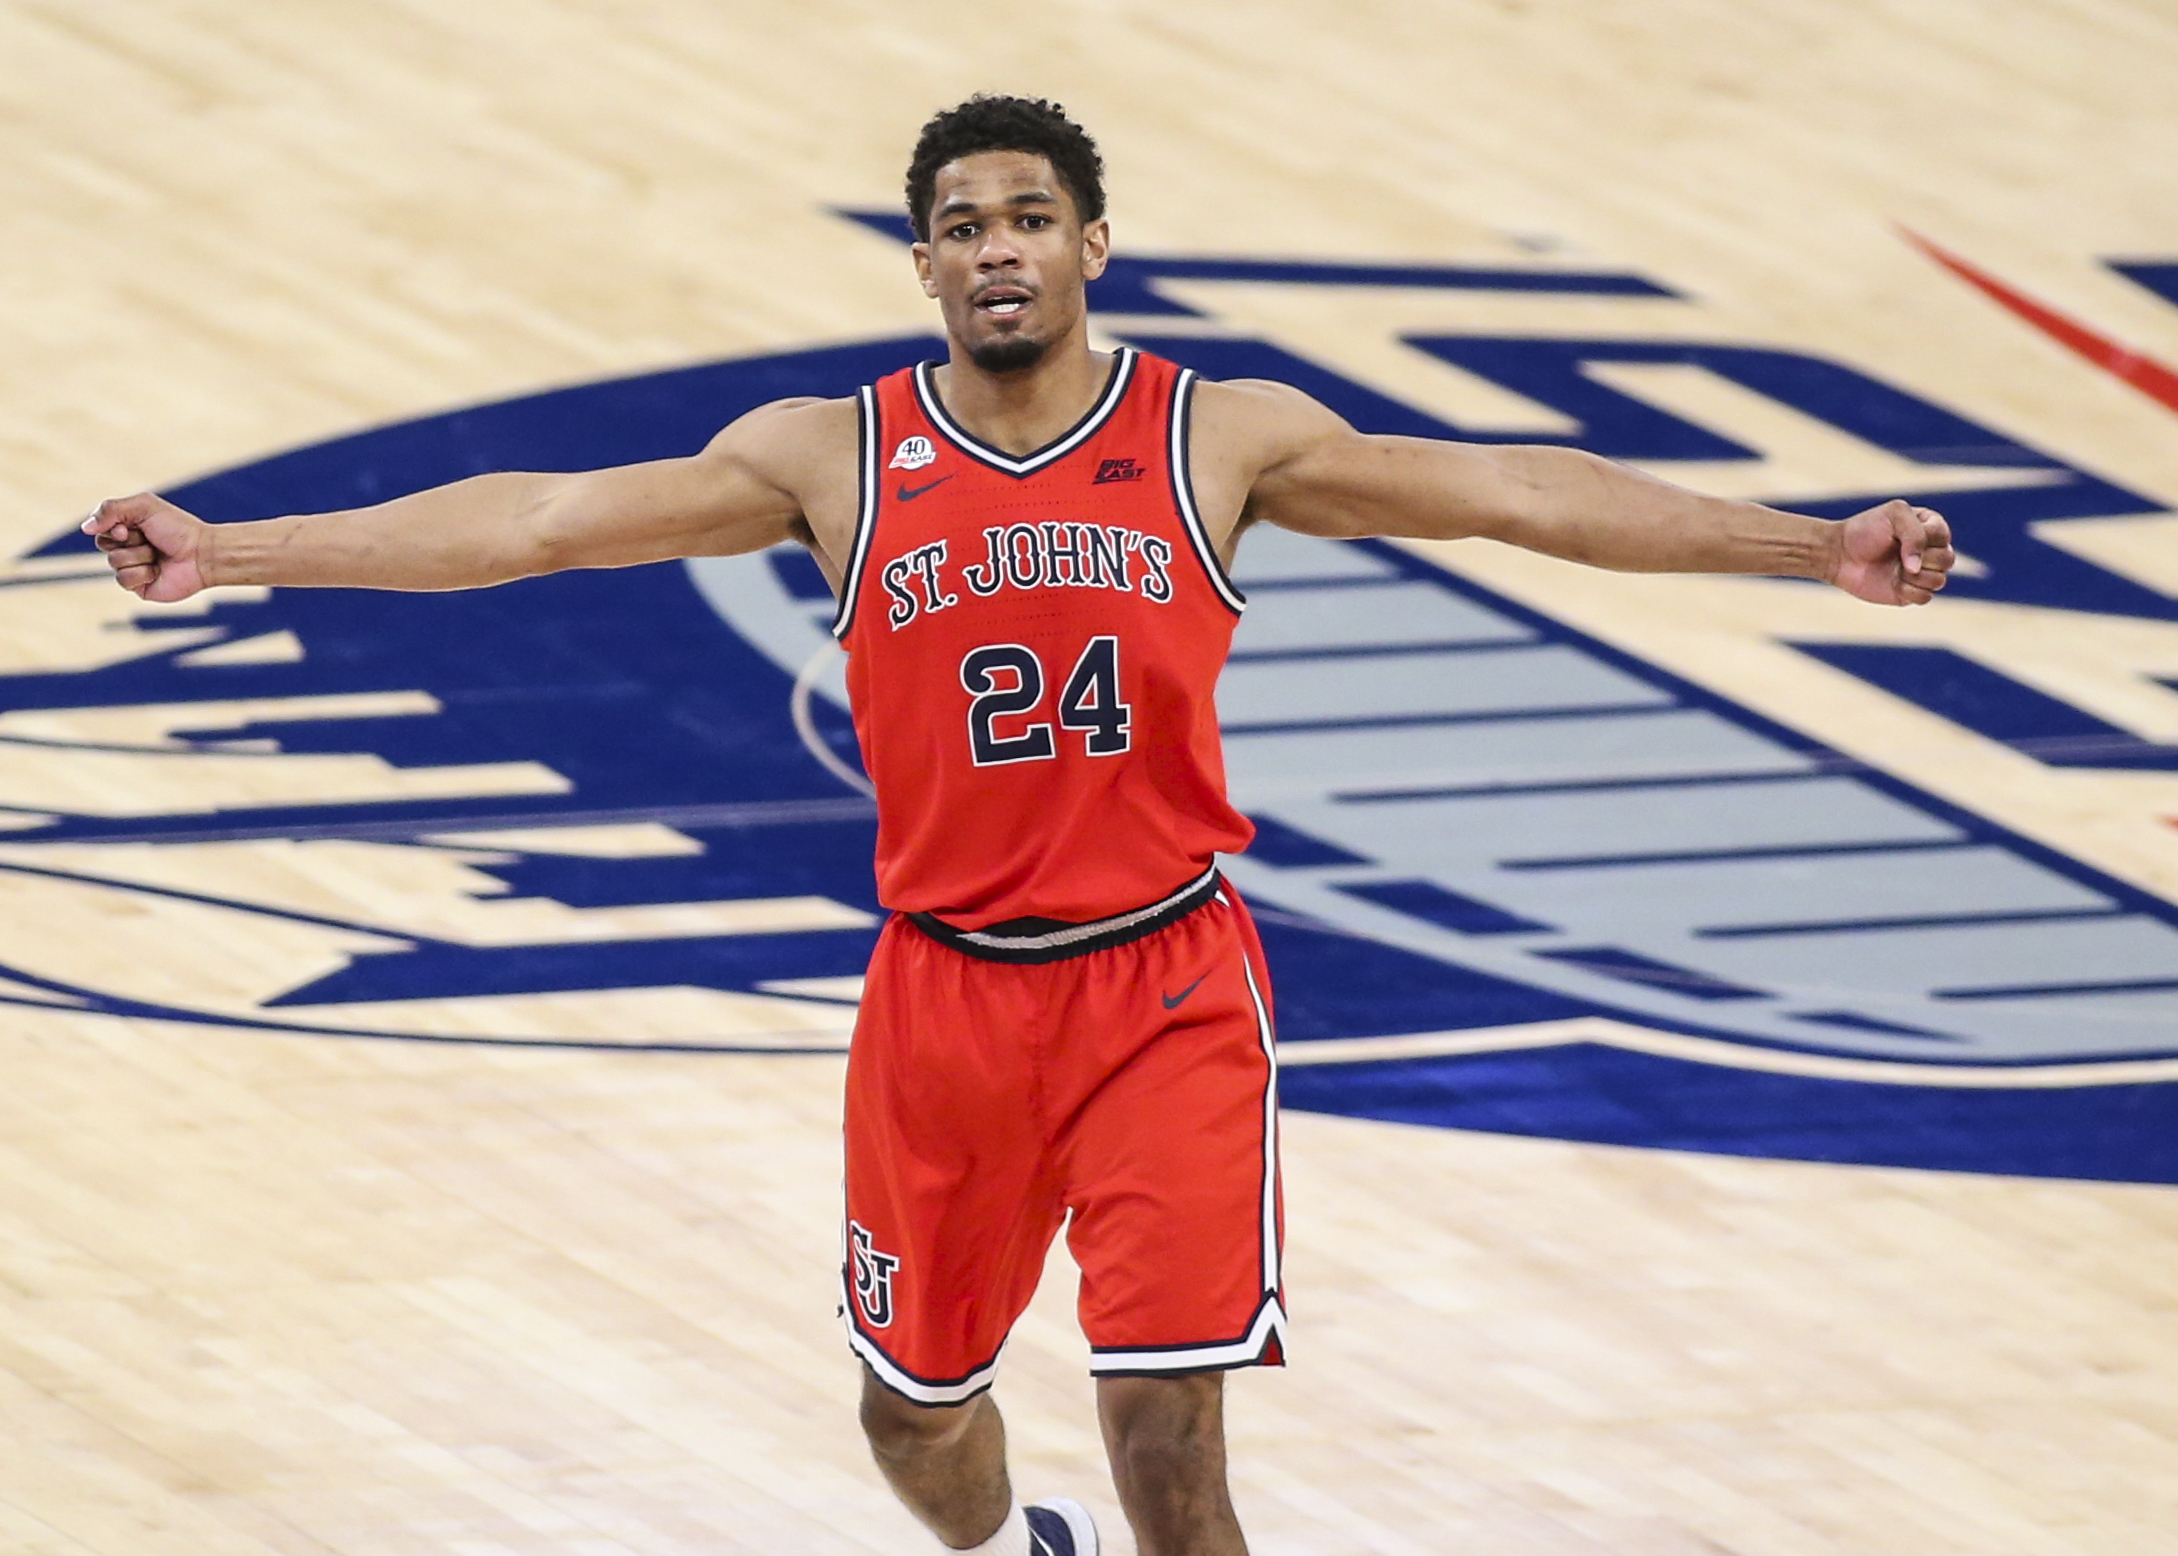 St. John's Nick Rutherford took full advantage of his graduate transfer opportunity